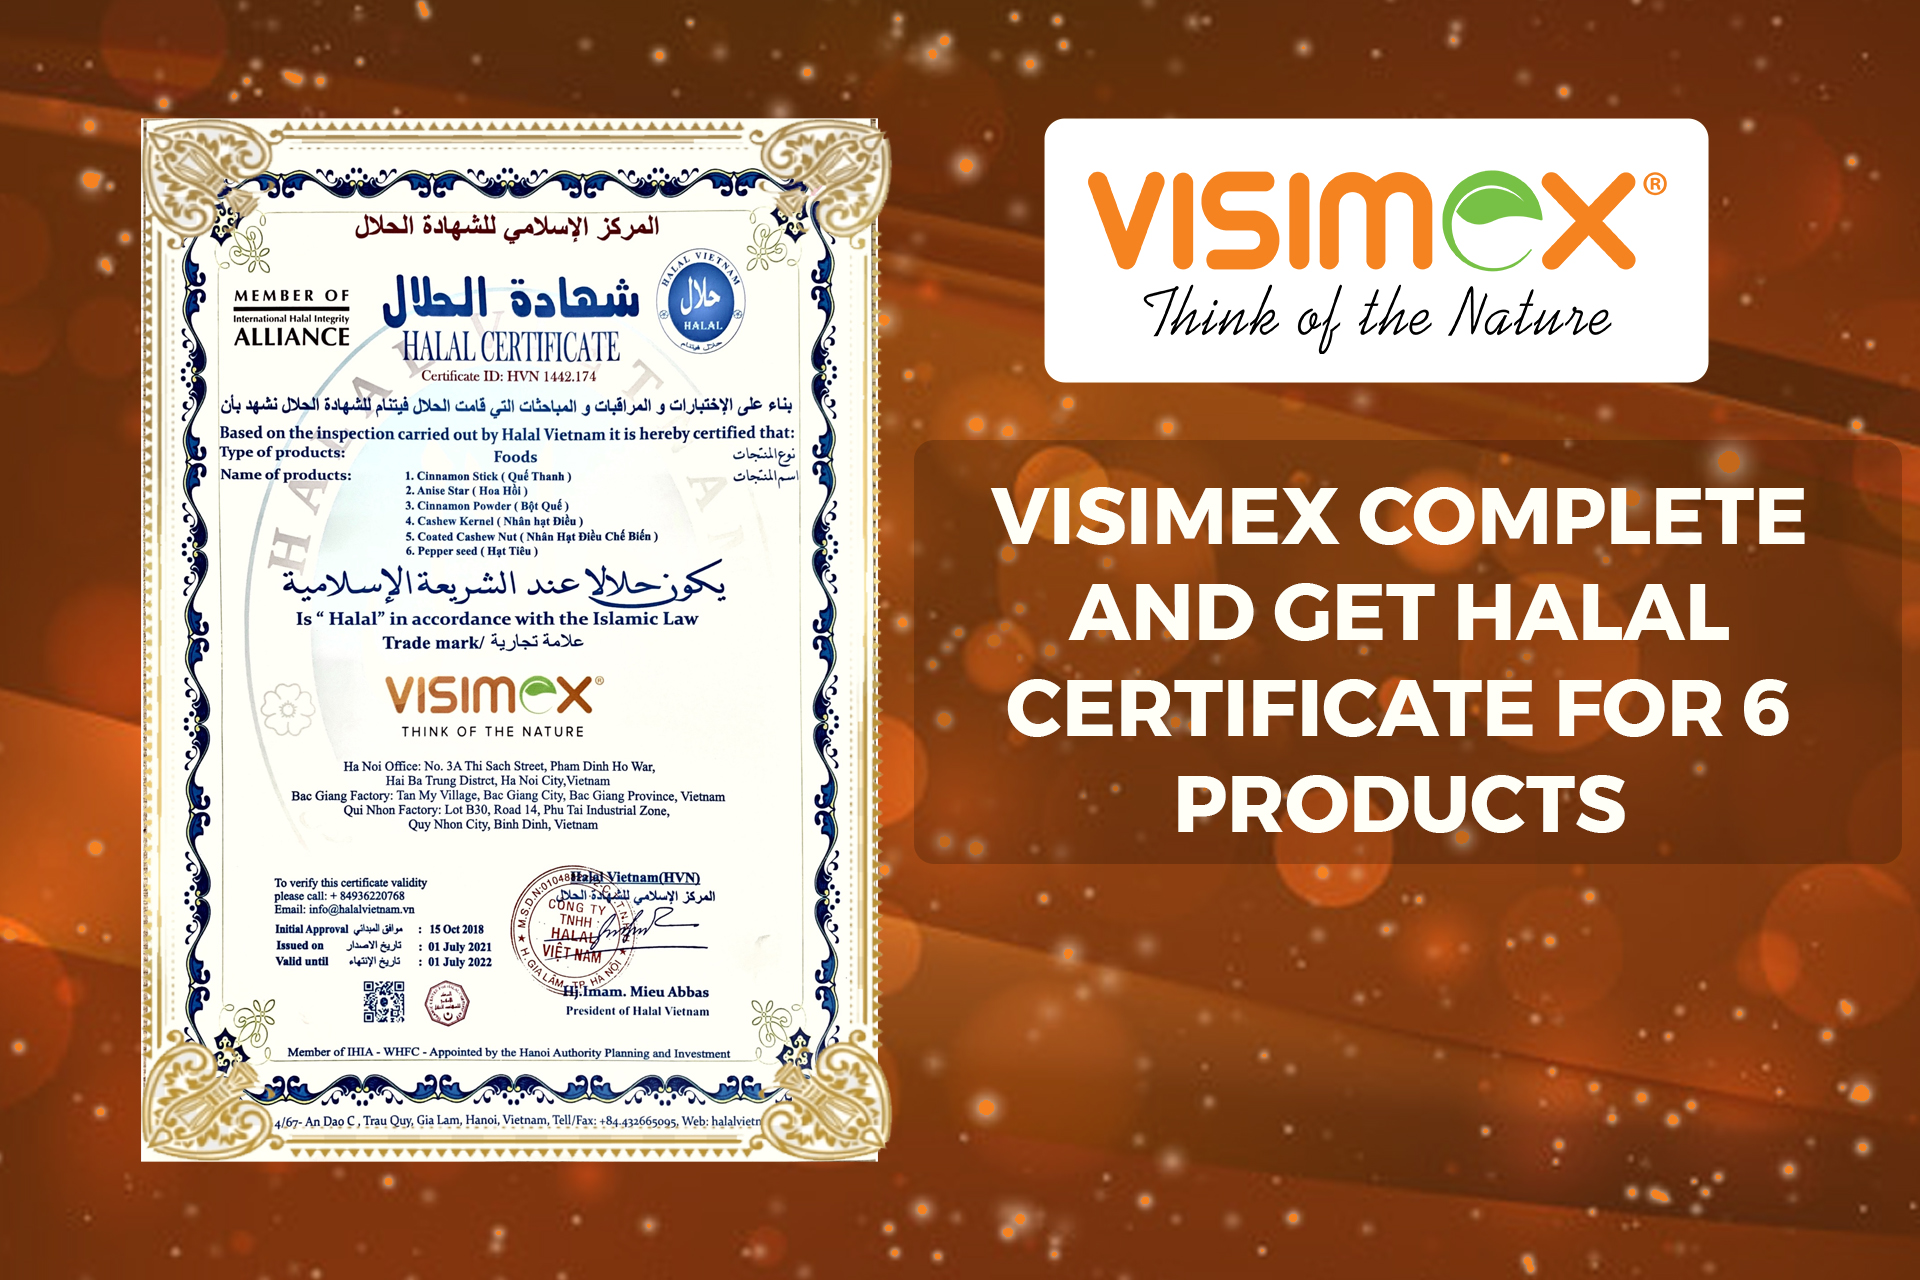 Visimex complete and get Halal certificate